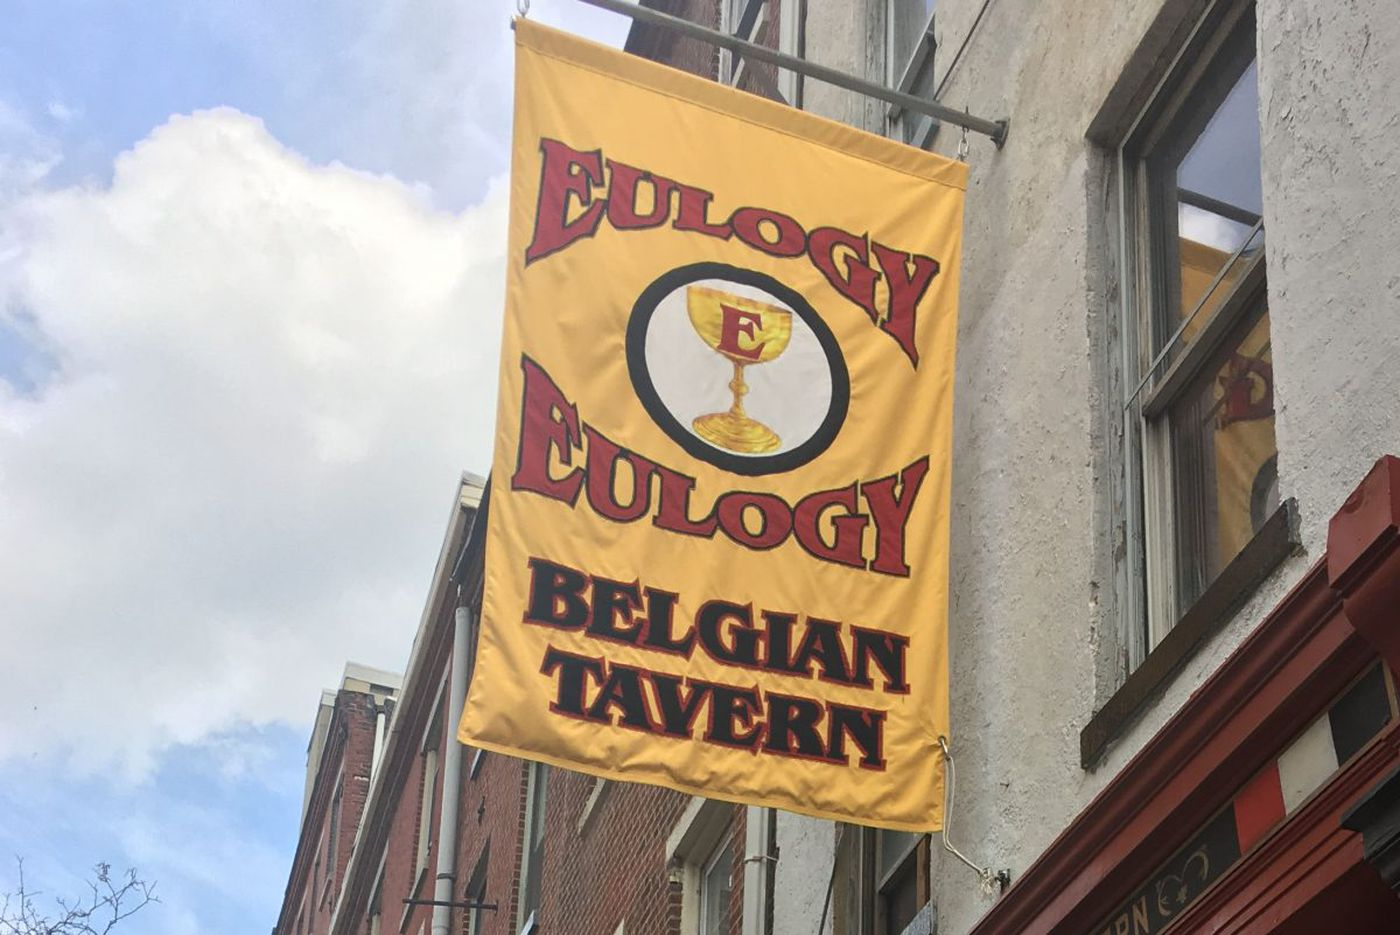 Eulogies for Eulogy: Paying tribute to the closing of an Old City bar